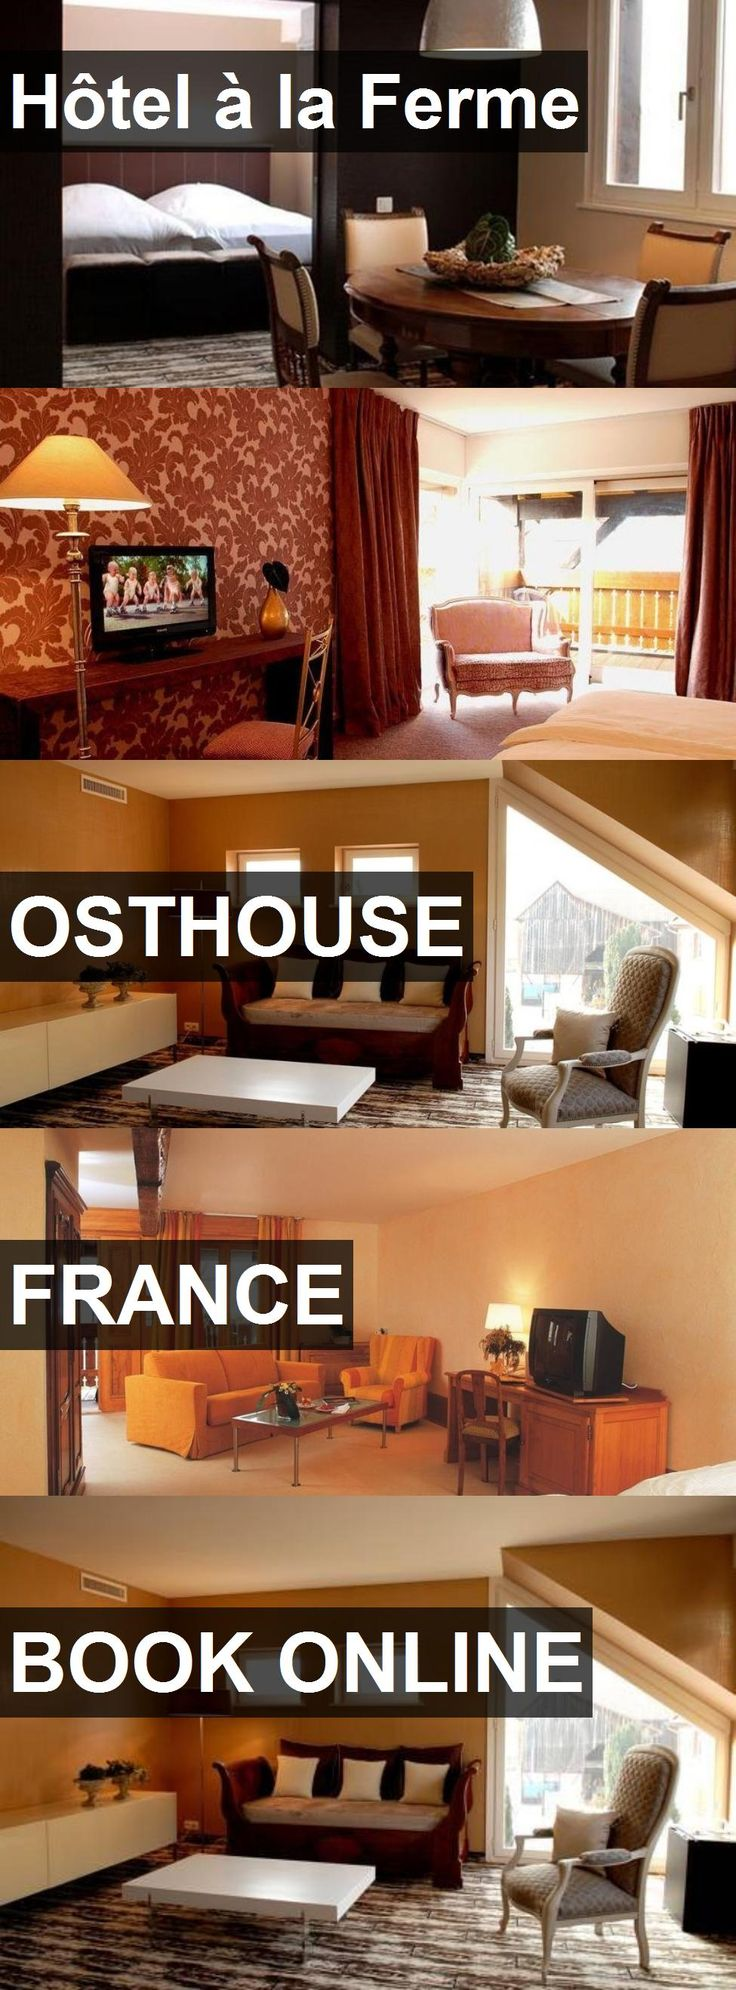 Hotel Hôtel à la Ferme in Osthouse, France. For more information, photos, reviews and best prices please follow the link. #France #Osthouse #HôtelàlaFerme #hotel #travel #vacation